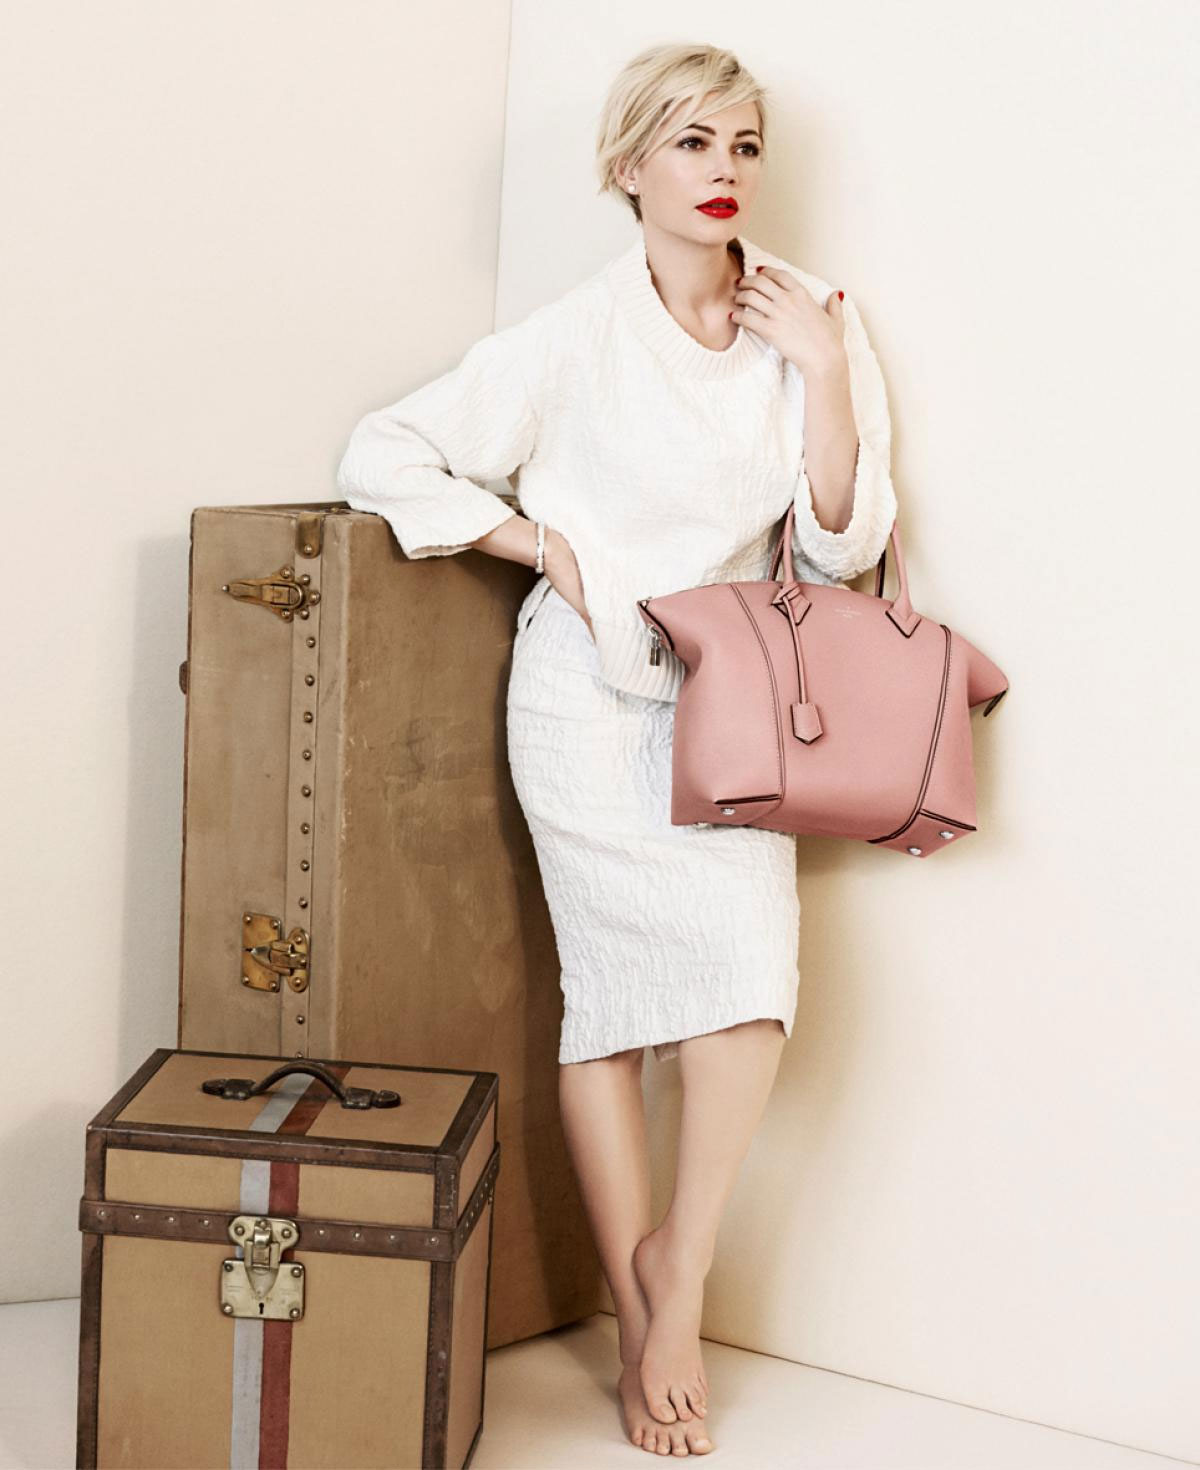 louis vuitton bags celebrities. michelle williams - louis vuitton bags celebrities